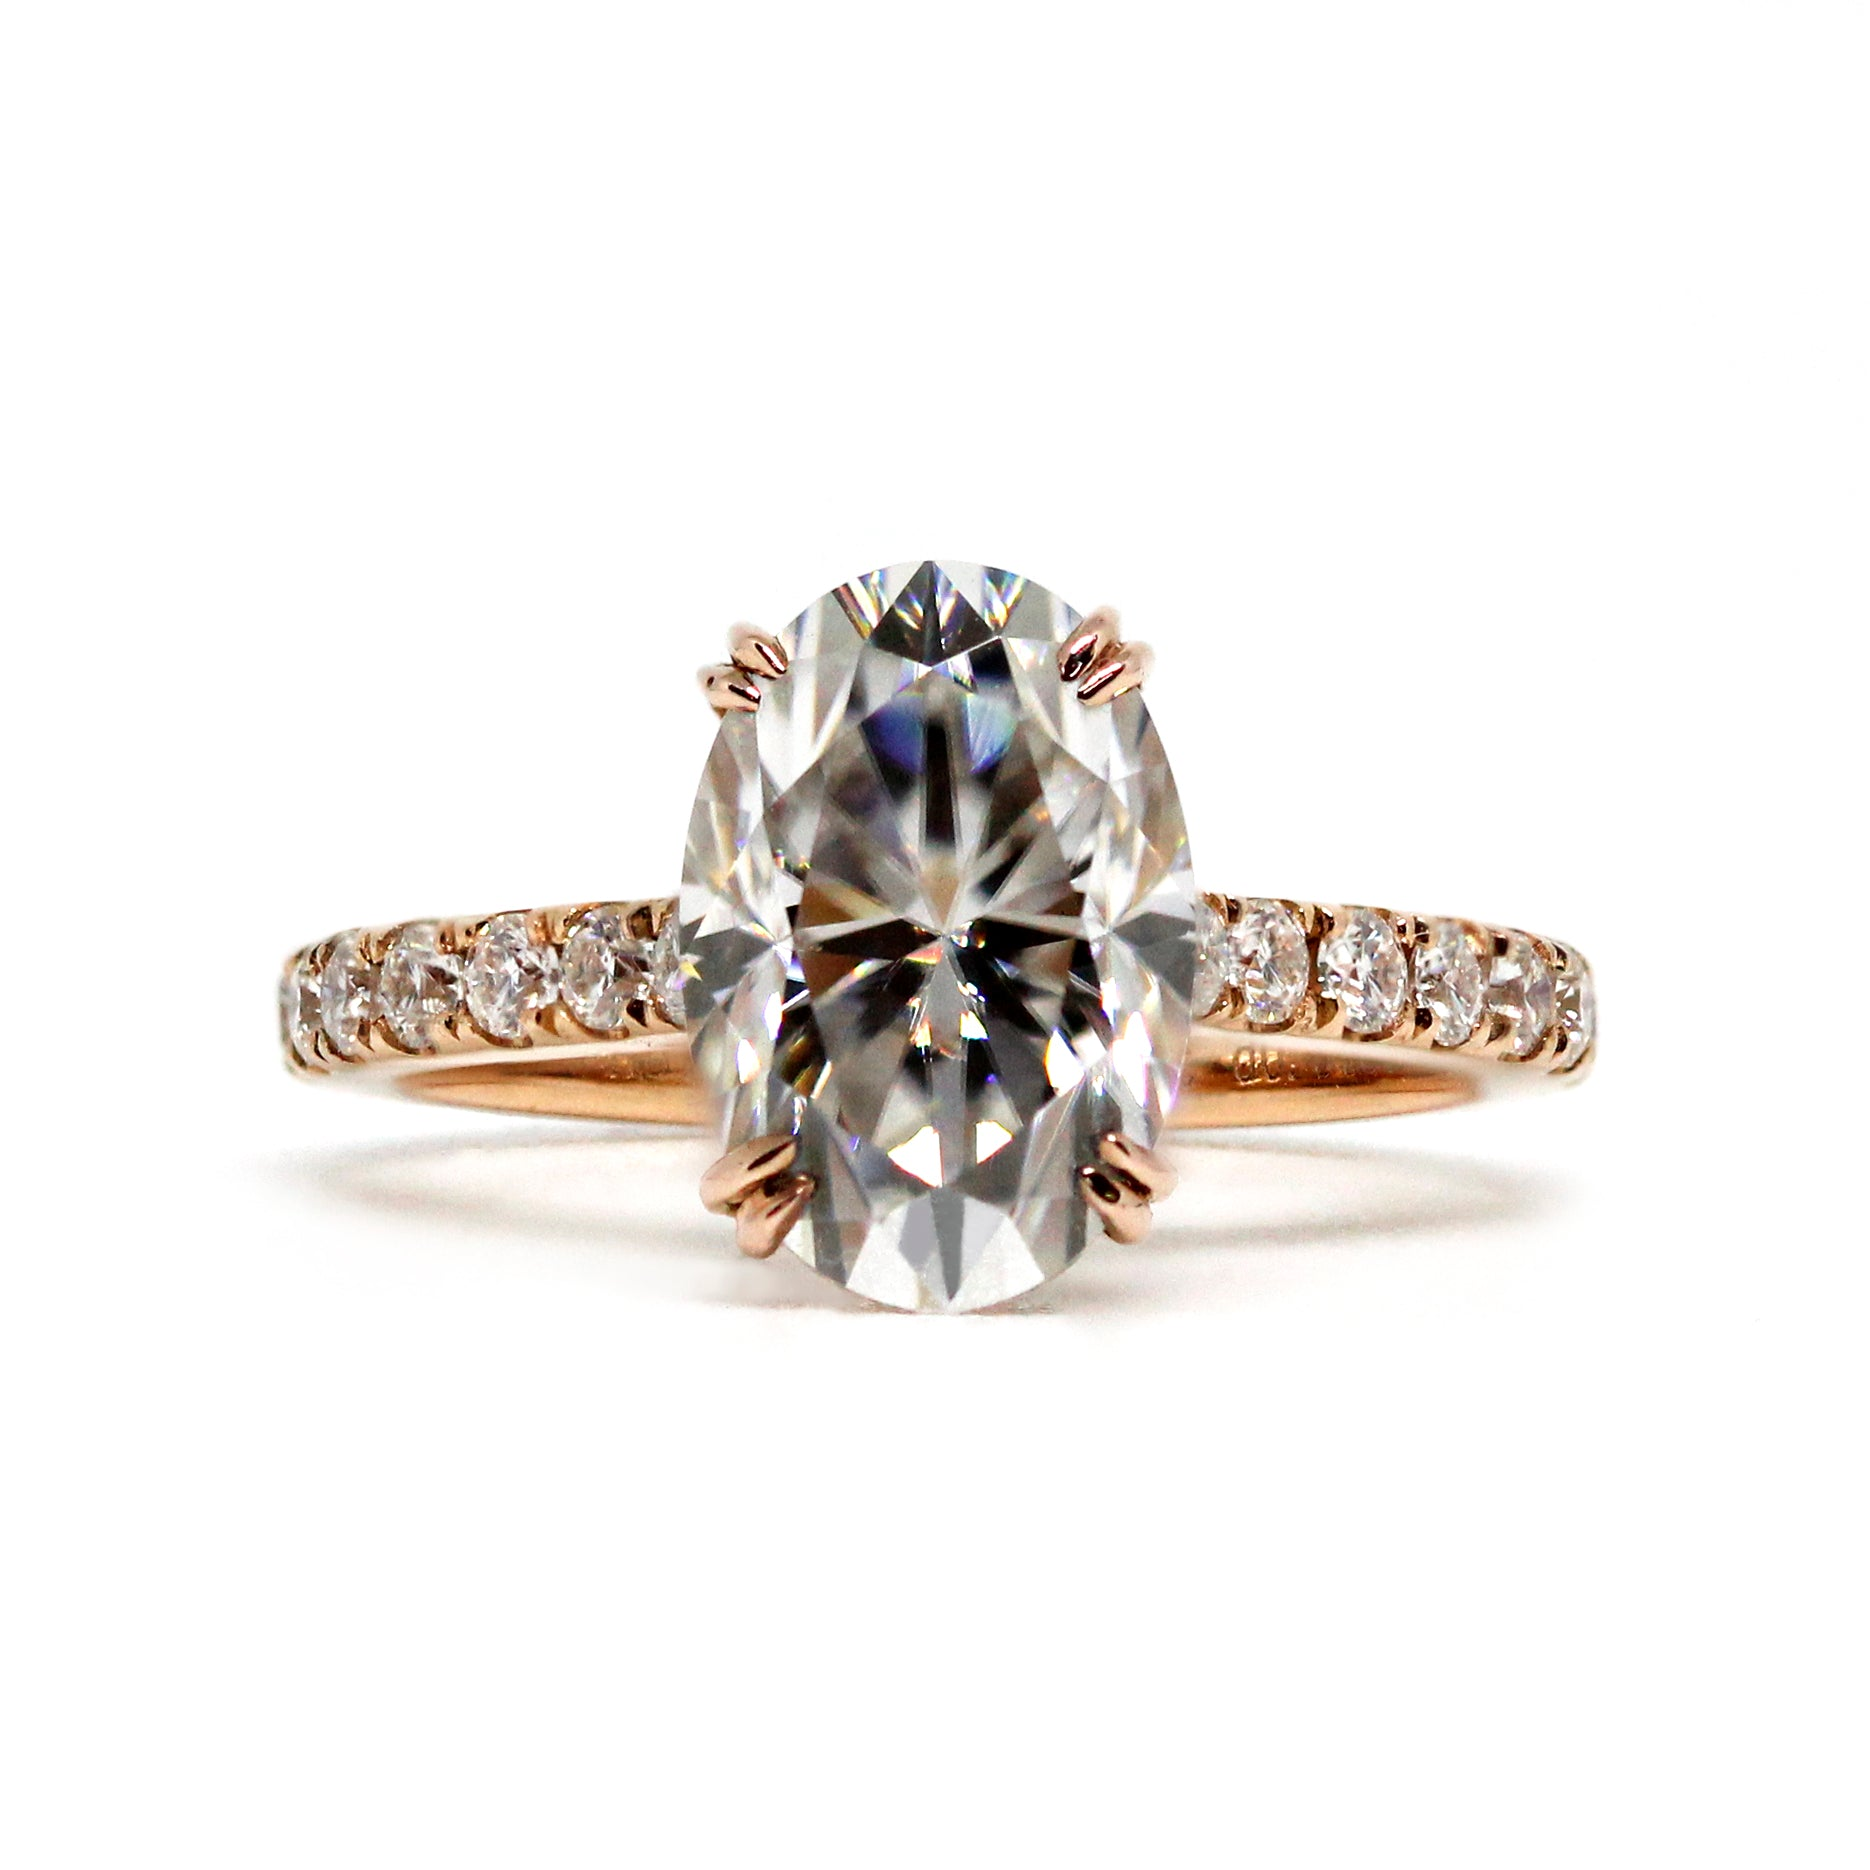 2 Carat Oval Moissanite Ring with Hidden Halo in 18K Rose Gold Ring - LeCaine Gems